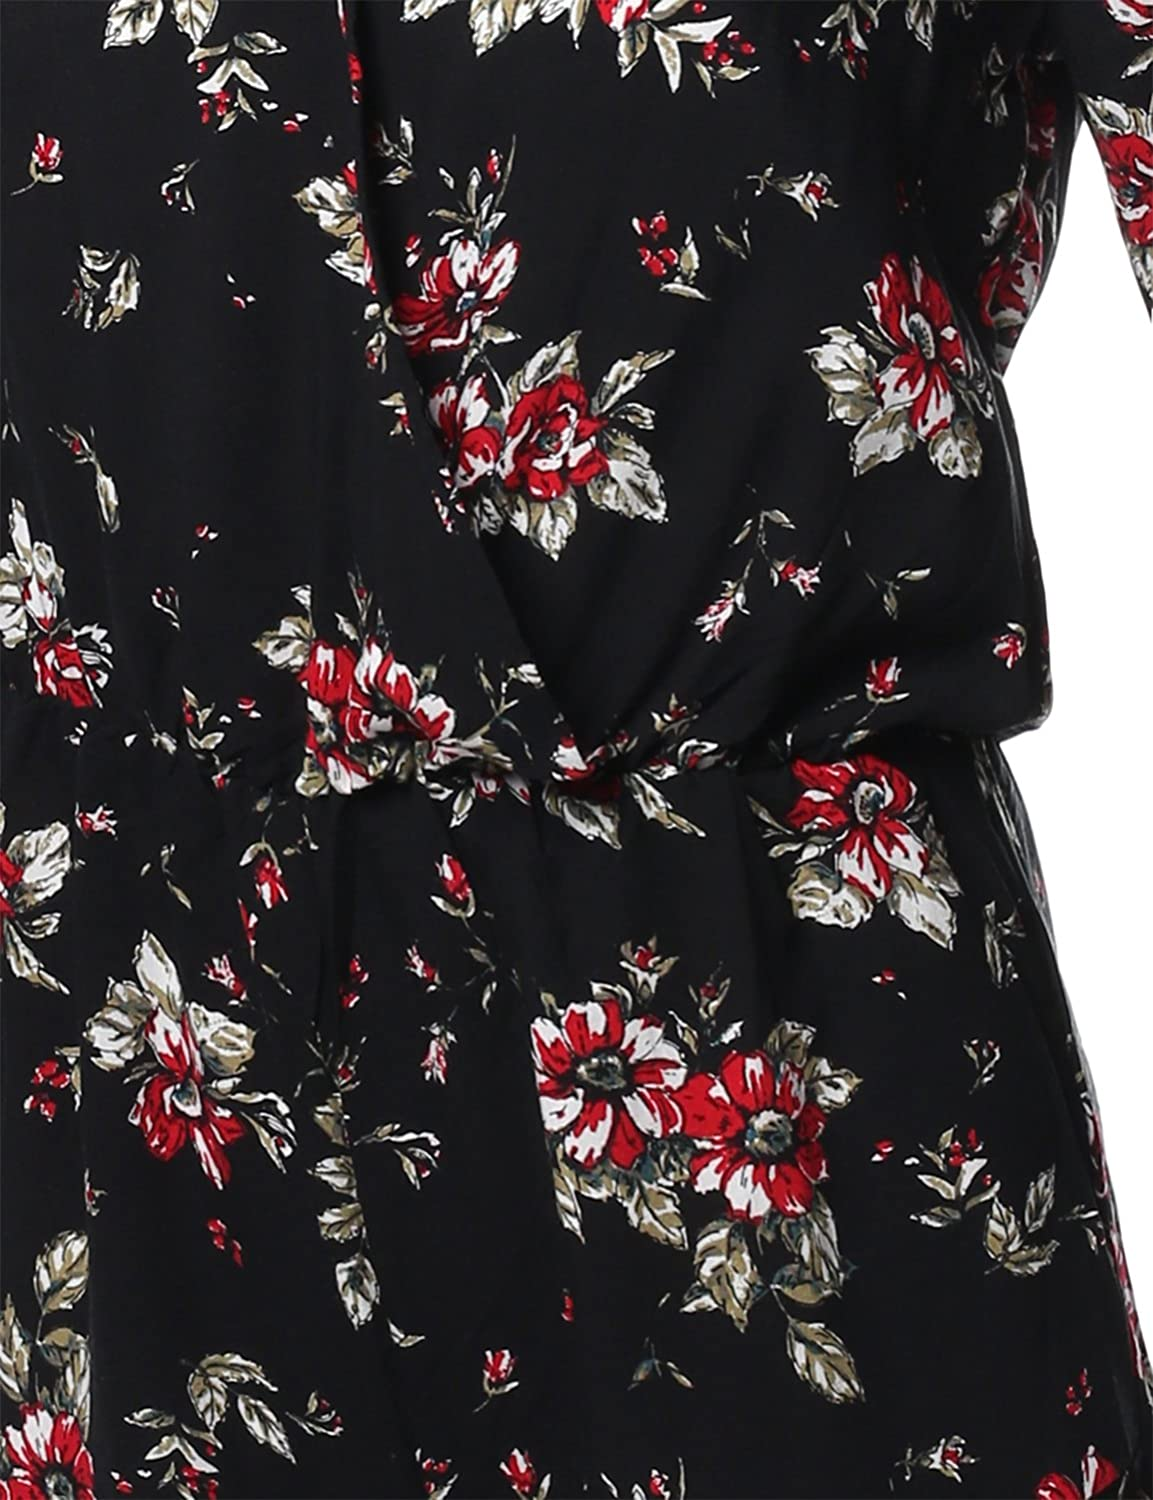 Awesome21 Floral Print Deep V-Neck 3//4 Ruffle Sleeve Romper Jumpsuit Black 2 Size S